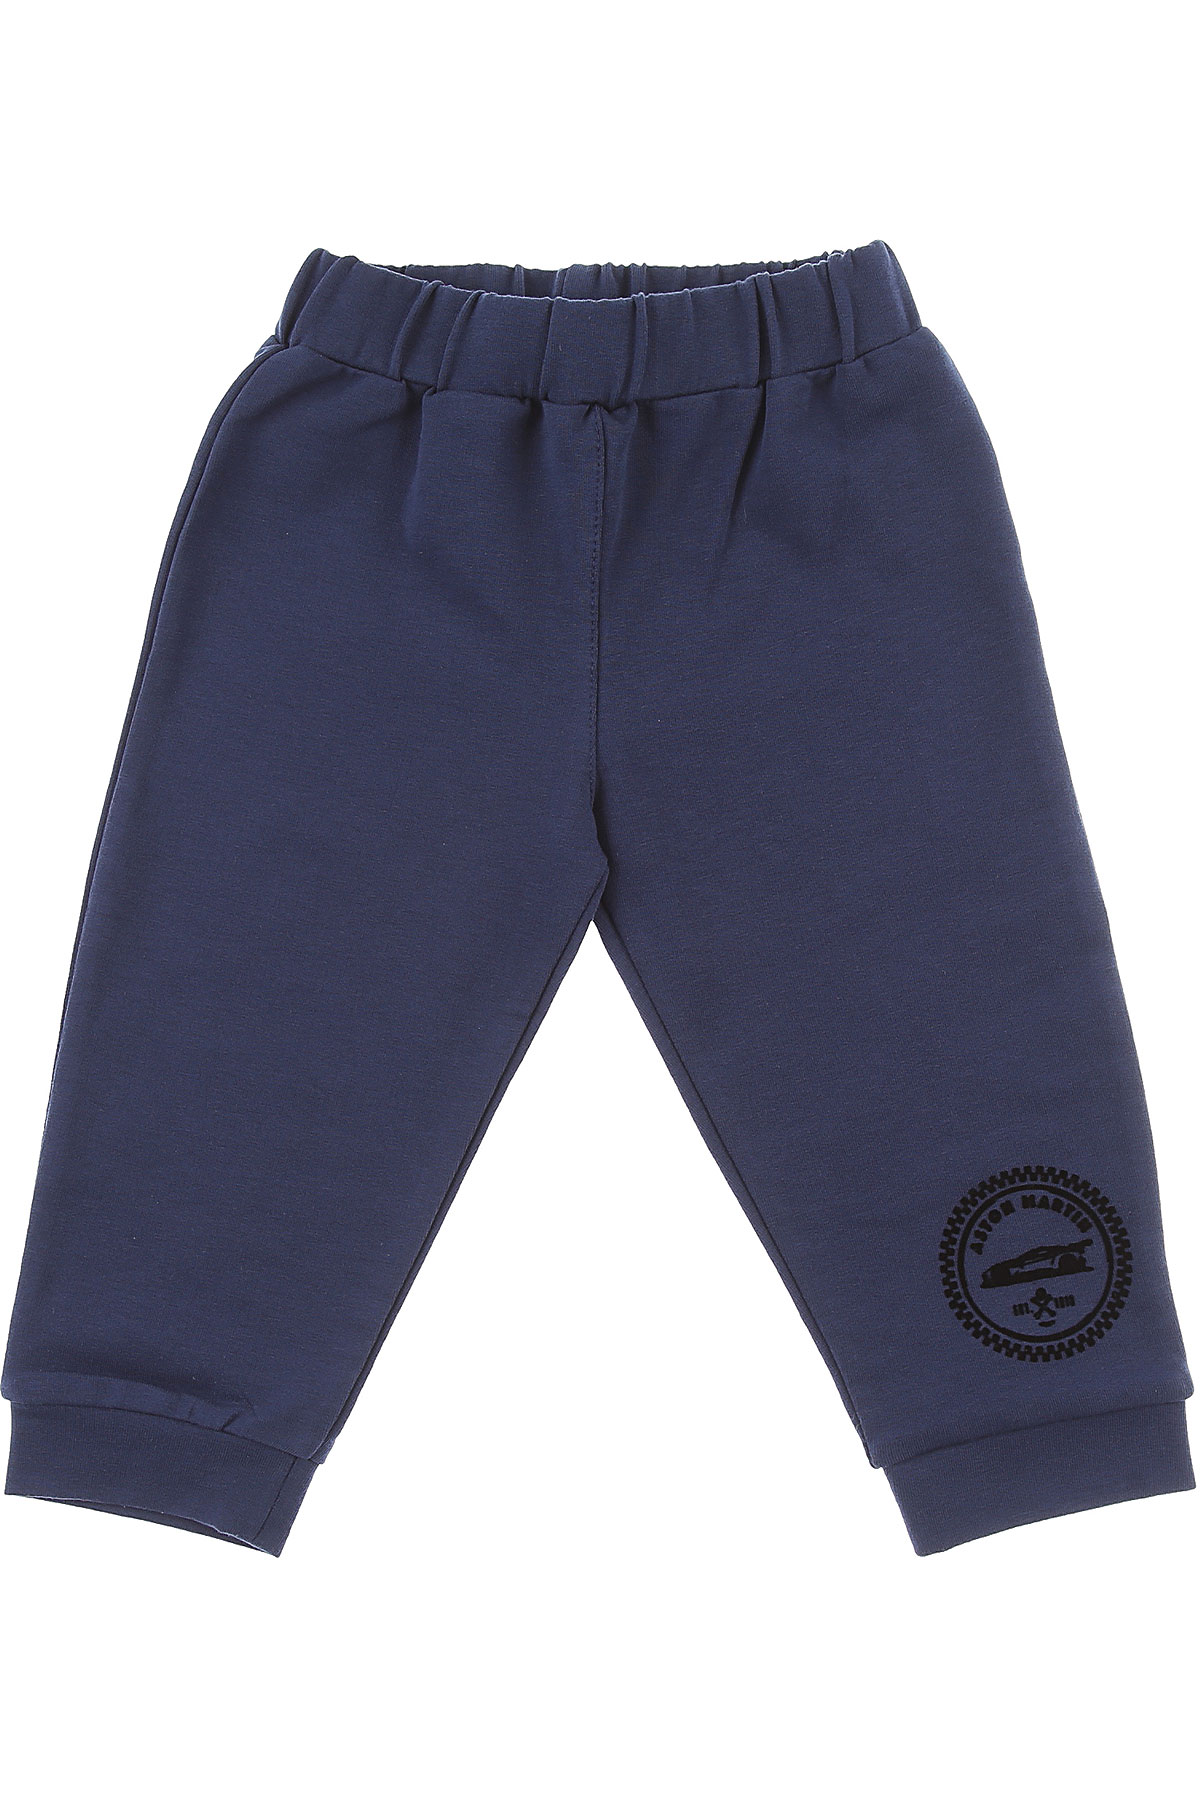 Image of Aston Martin Baby Pants for Boys, Navy Blue, Cotton, 2017, 12M 18M 6M 9M